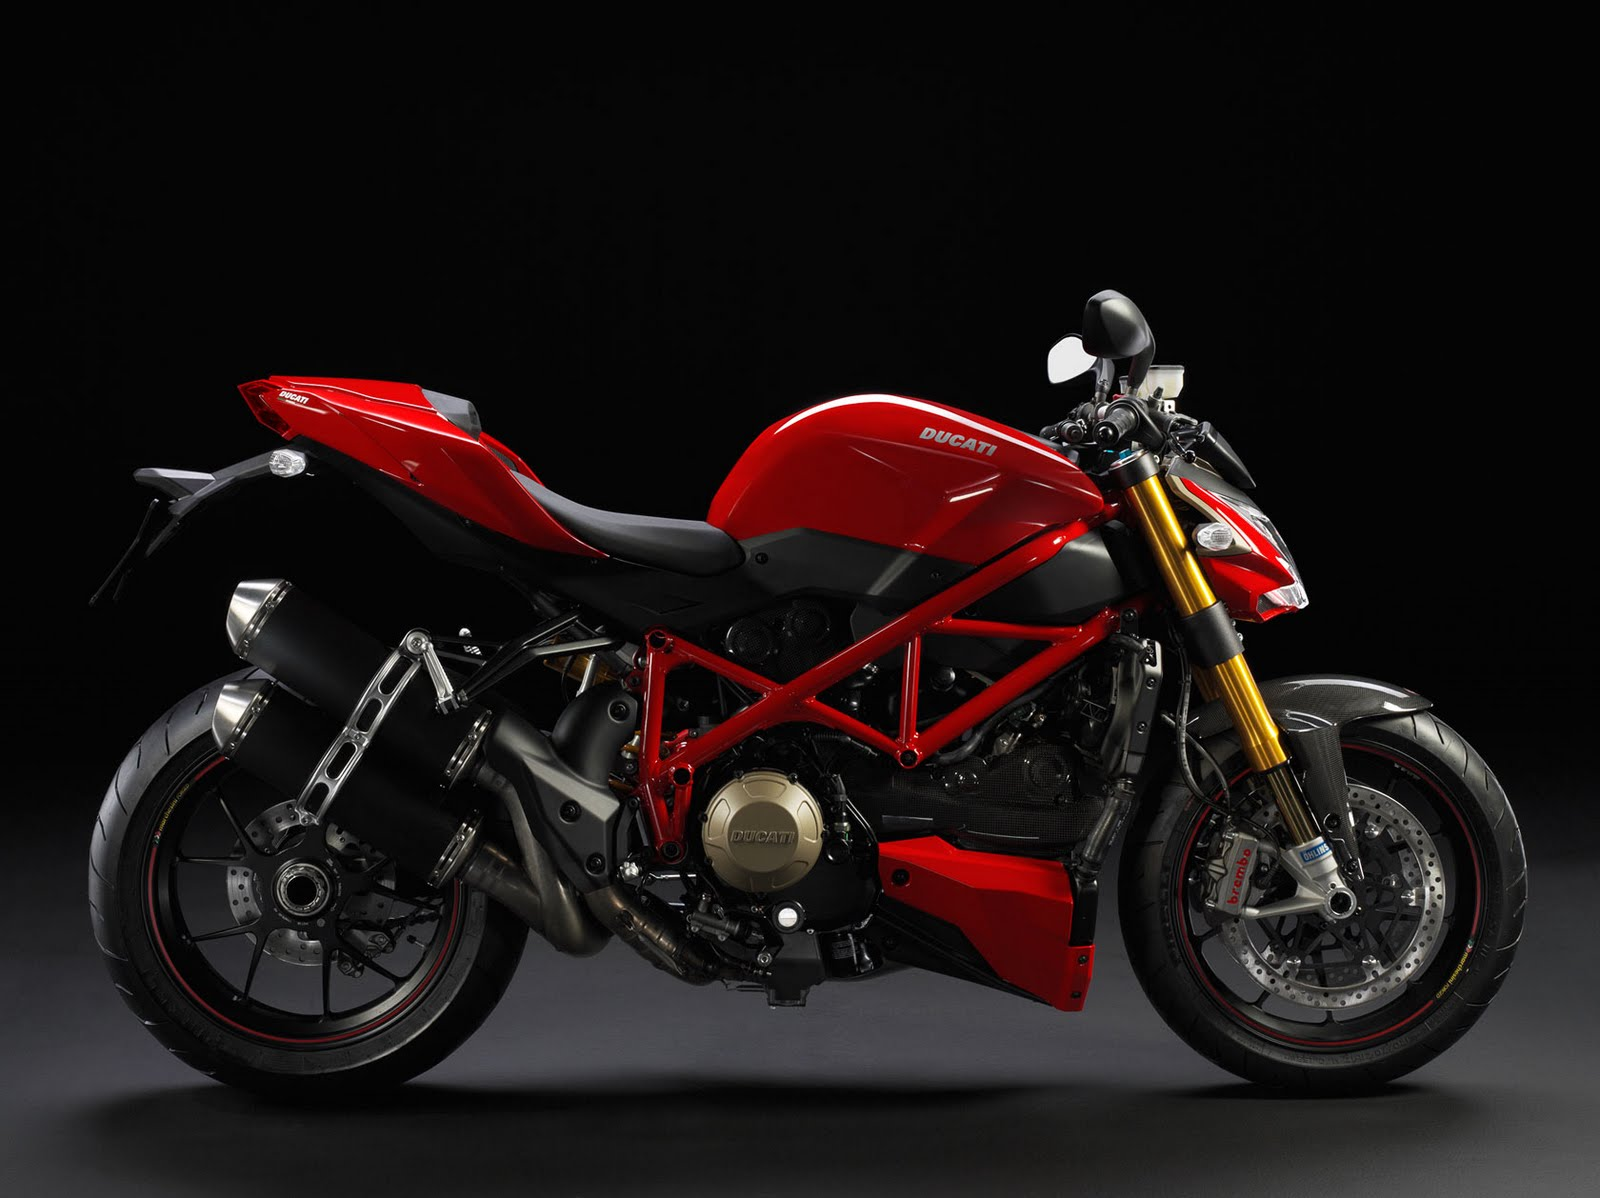 Ducati Streetfighter S First Look Motorcycle Superstore